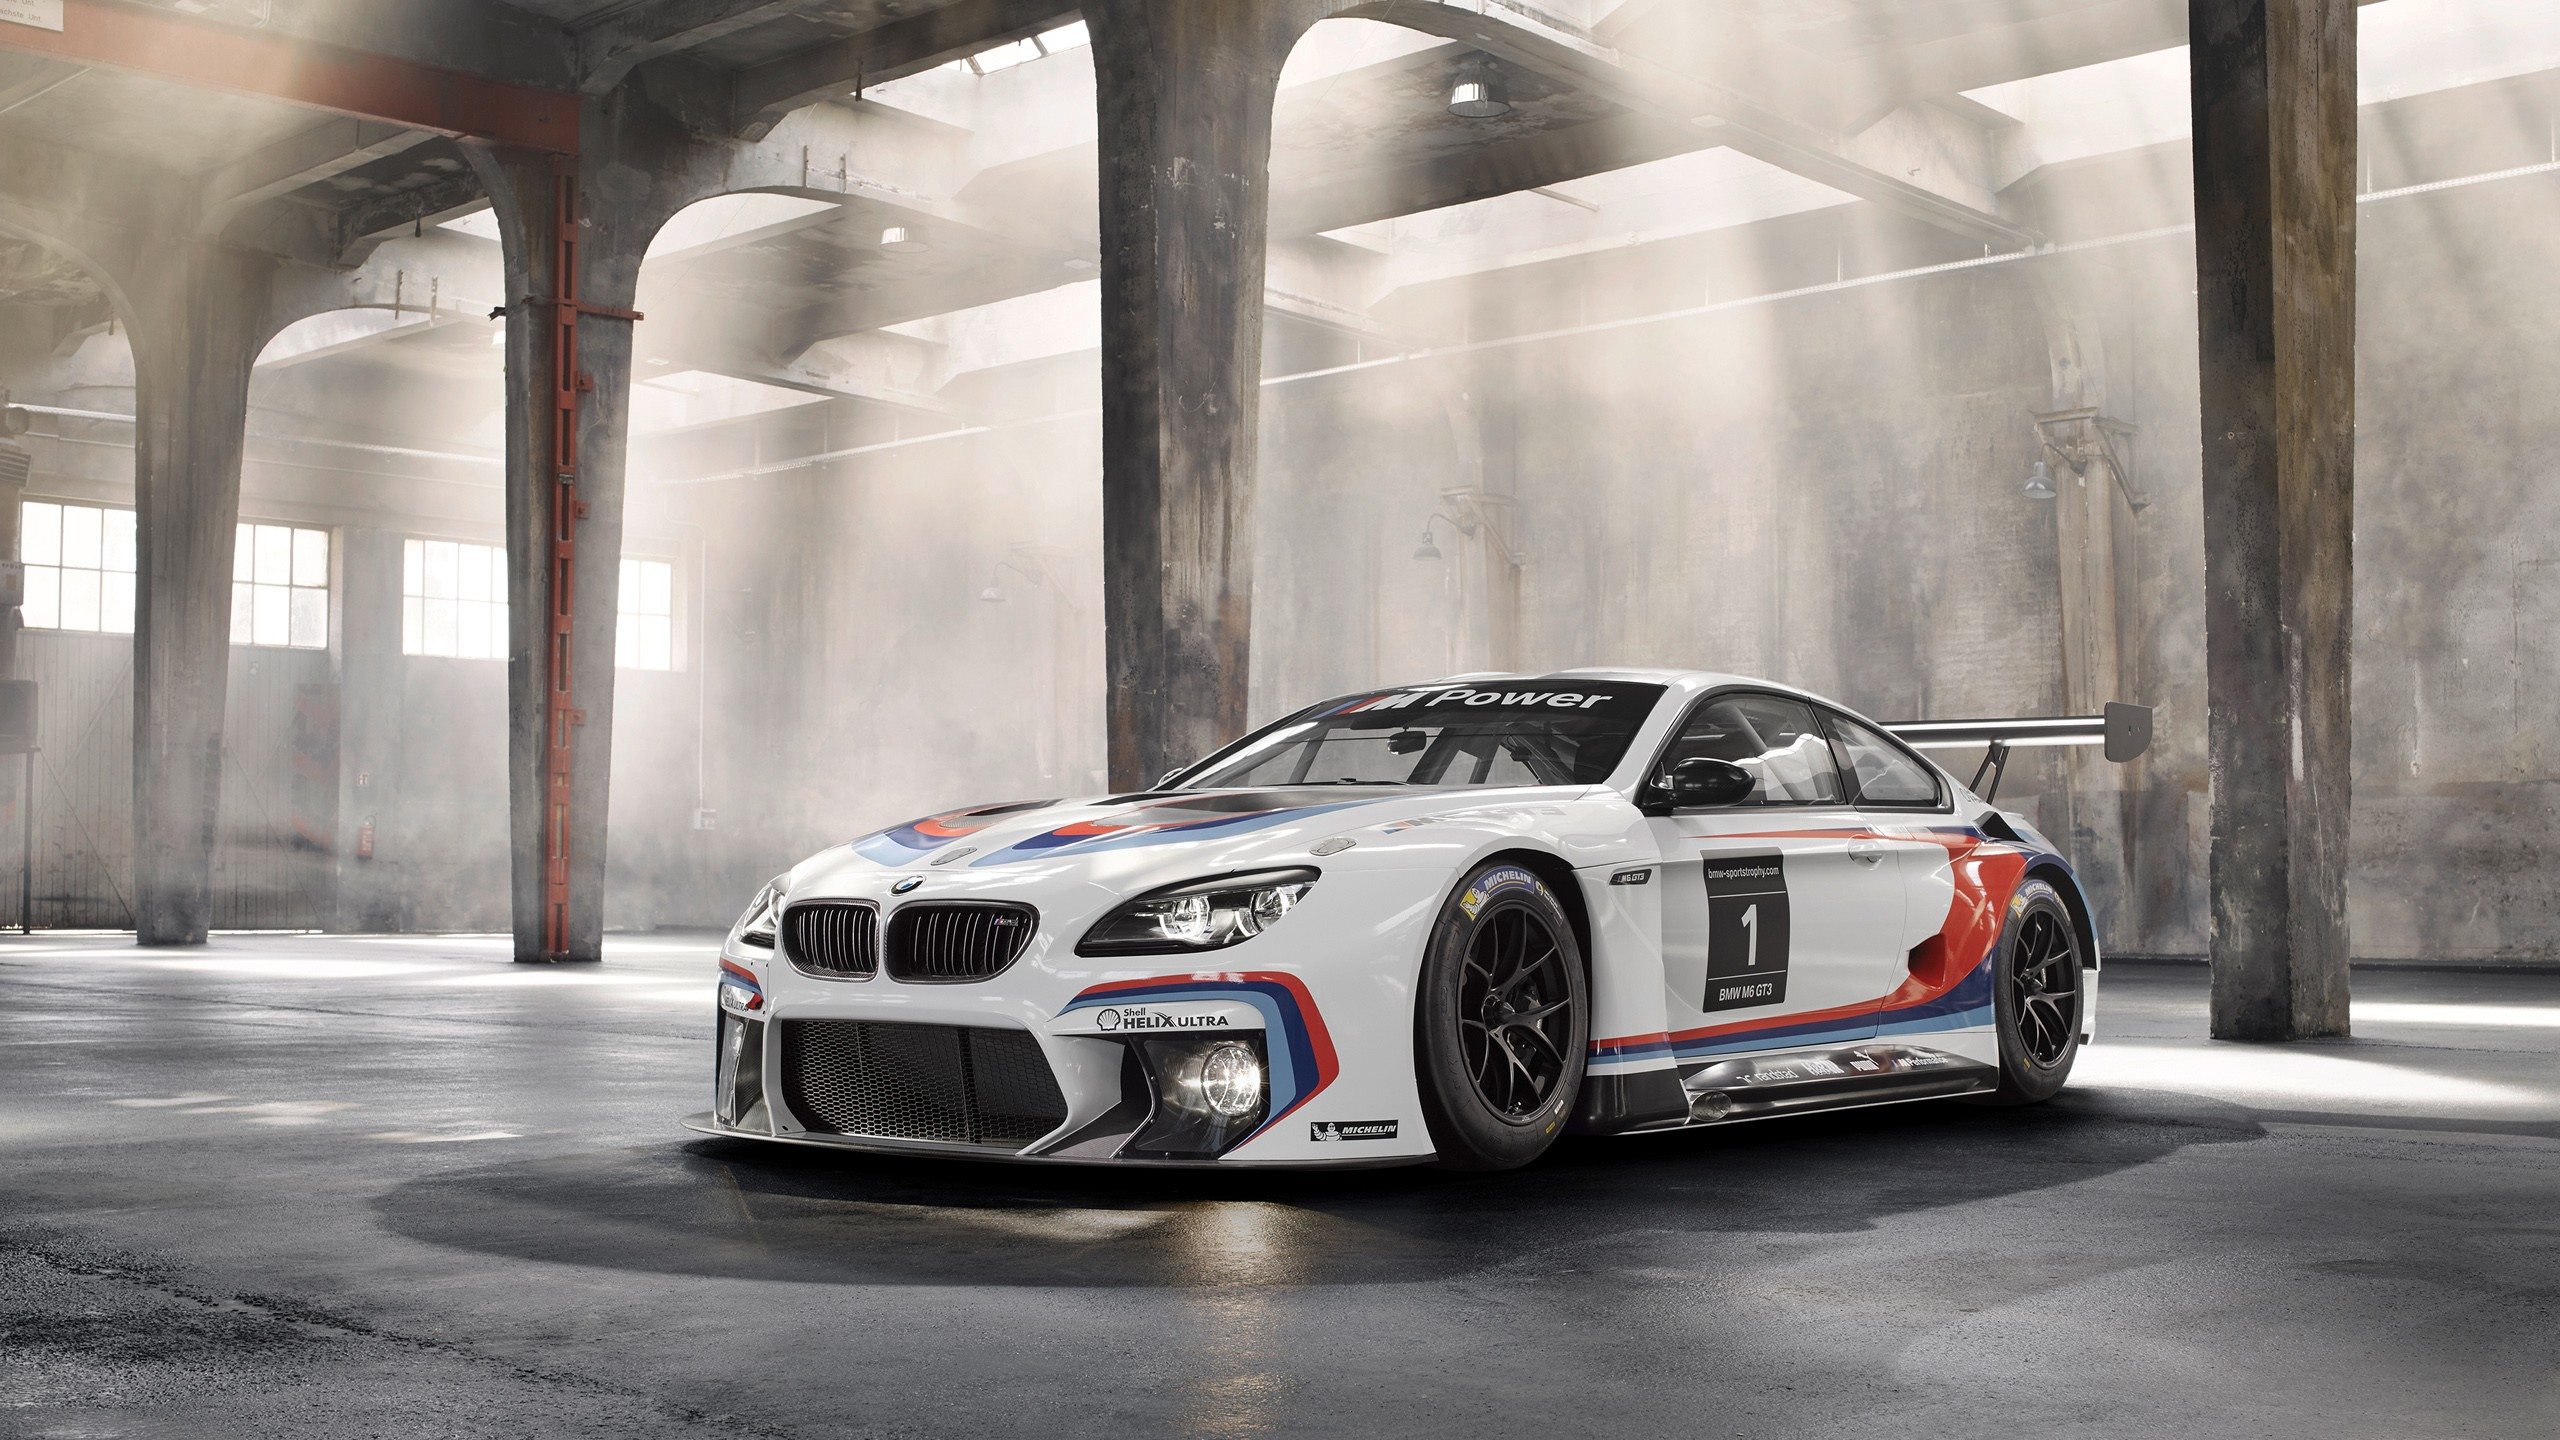 Apple Sport Chevrolet >> 2015 BMW M6 GT3 F13 Sport Wallpaper | HD Car Wallpapers ...